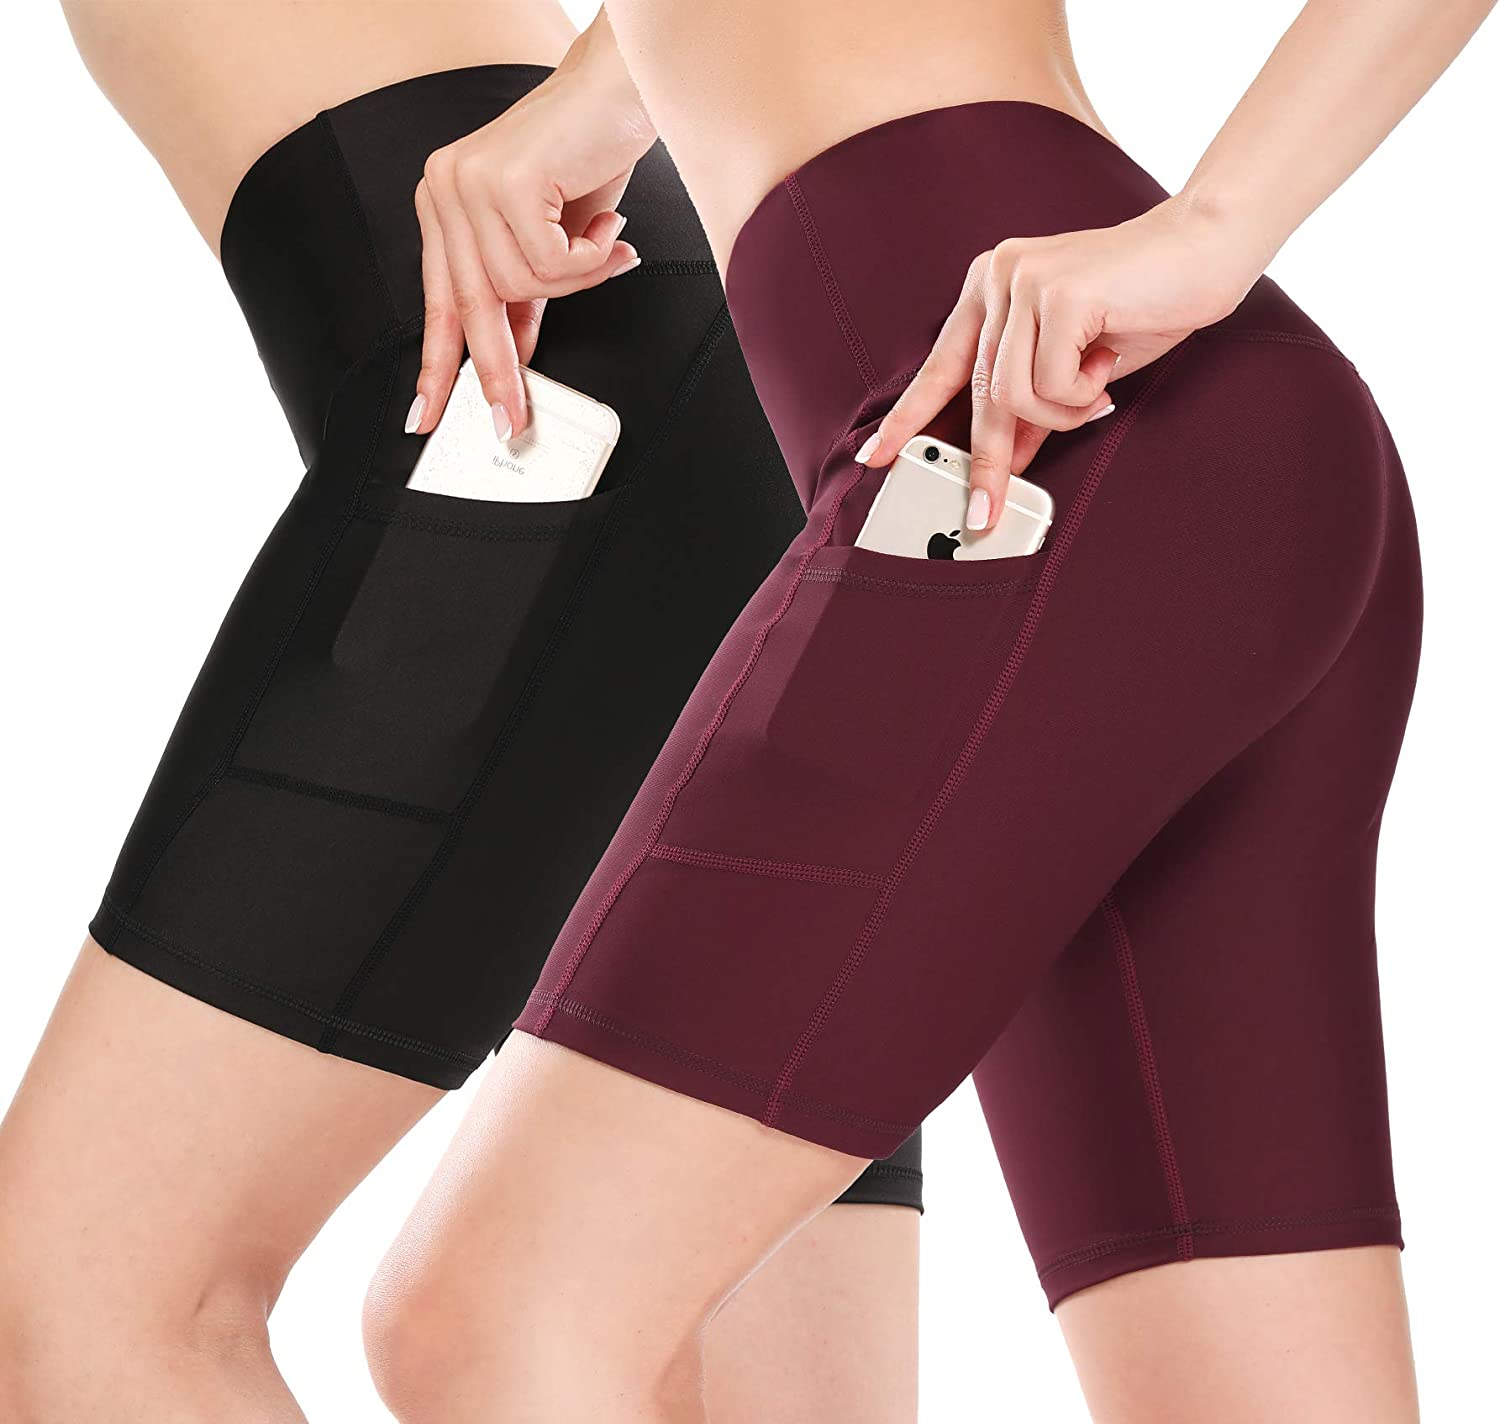 SILKWORLD 2 Pack Compression High Waist Running Yoga Shorts with Hidden Pockets